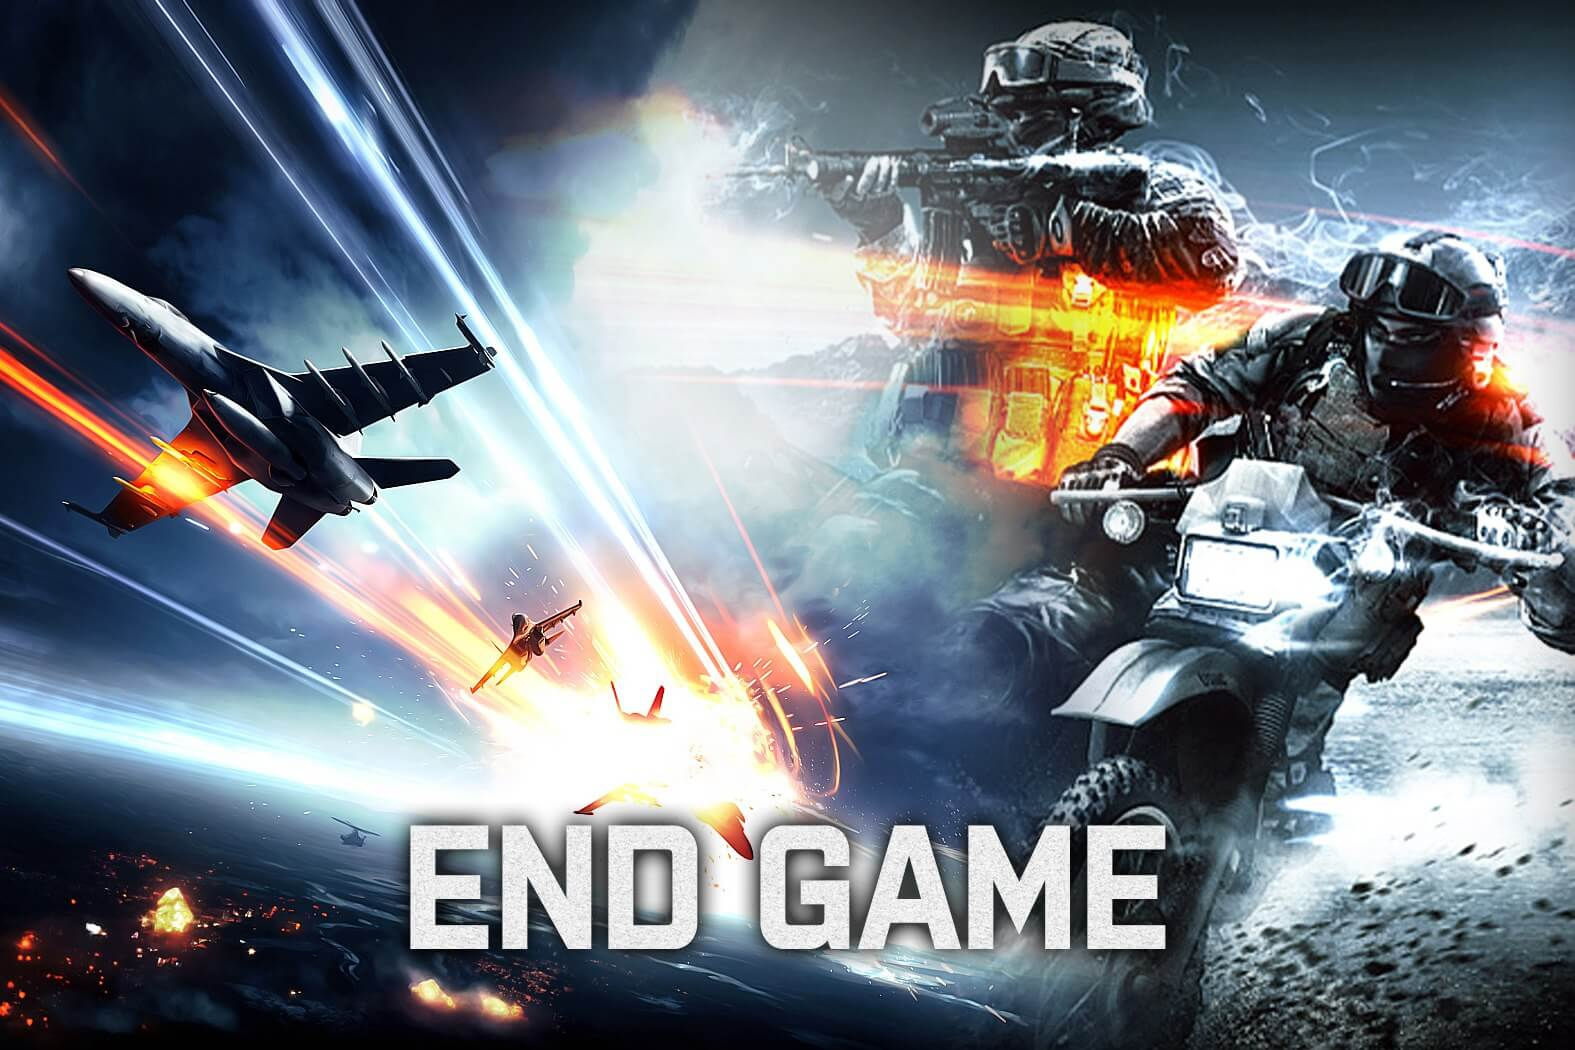 'Battlefield 3: End Game' Trailer & First Look Video